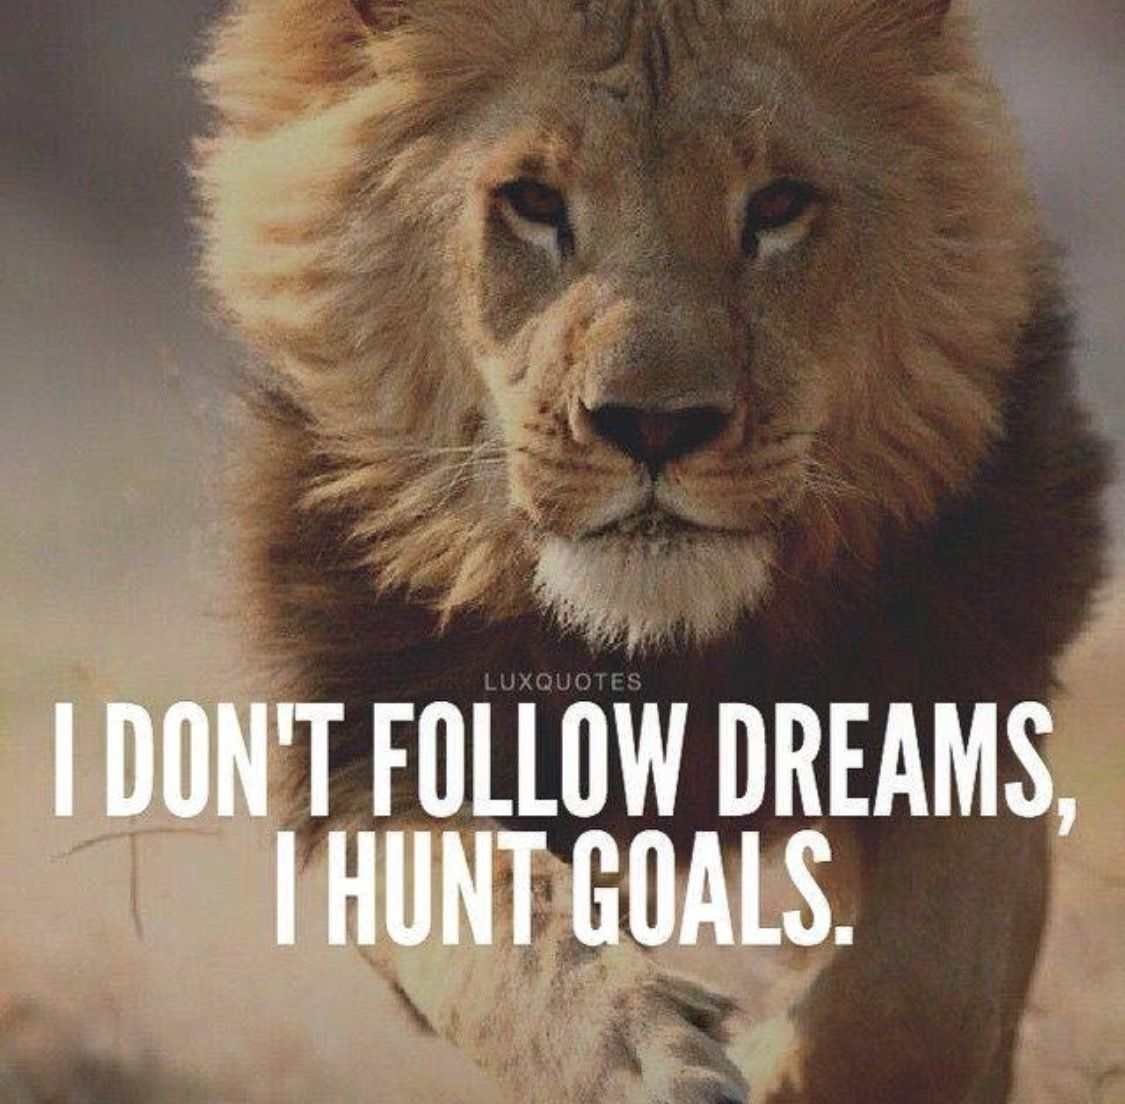 Motivational Quotes With Lion Images: GOALS NOT DREAMS! JUST SAYING!!!!